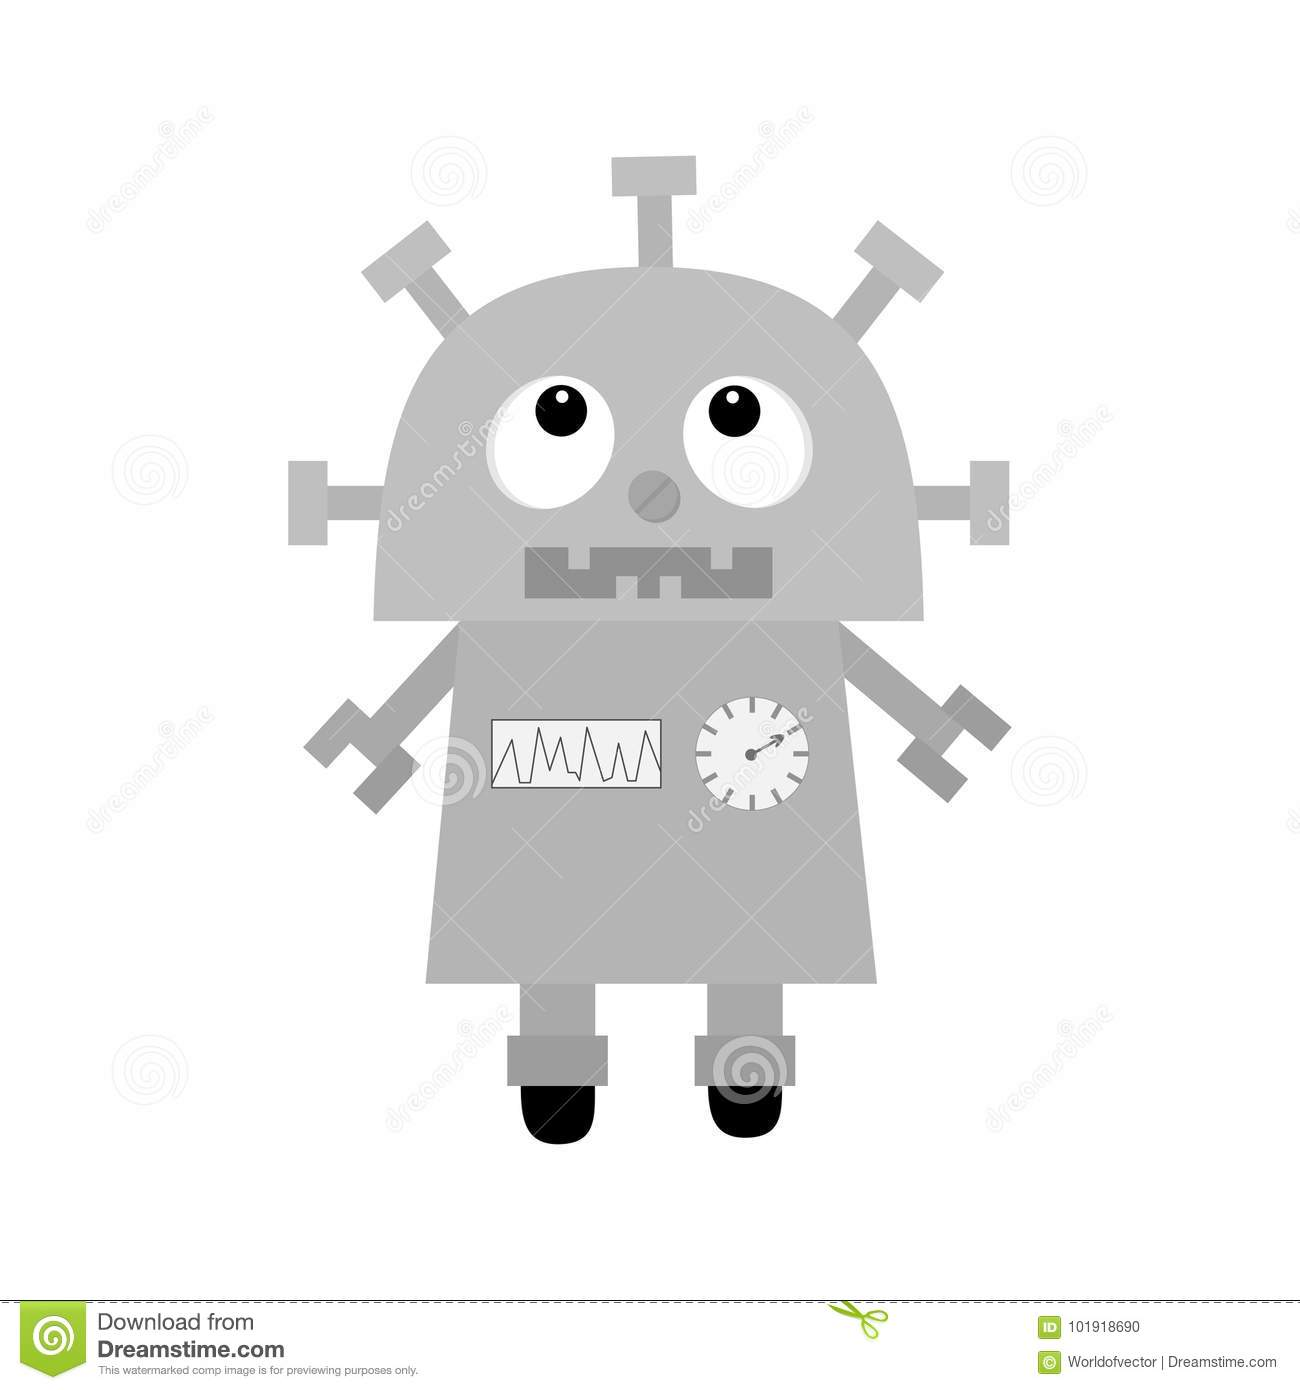 Robot looking up nose clock heart diagram open mouth with tooth download robot looking up nose clock heart diagram open mouth with tooth ccuart Image collections